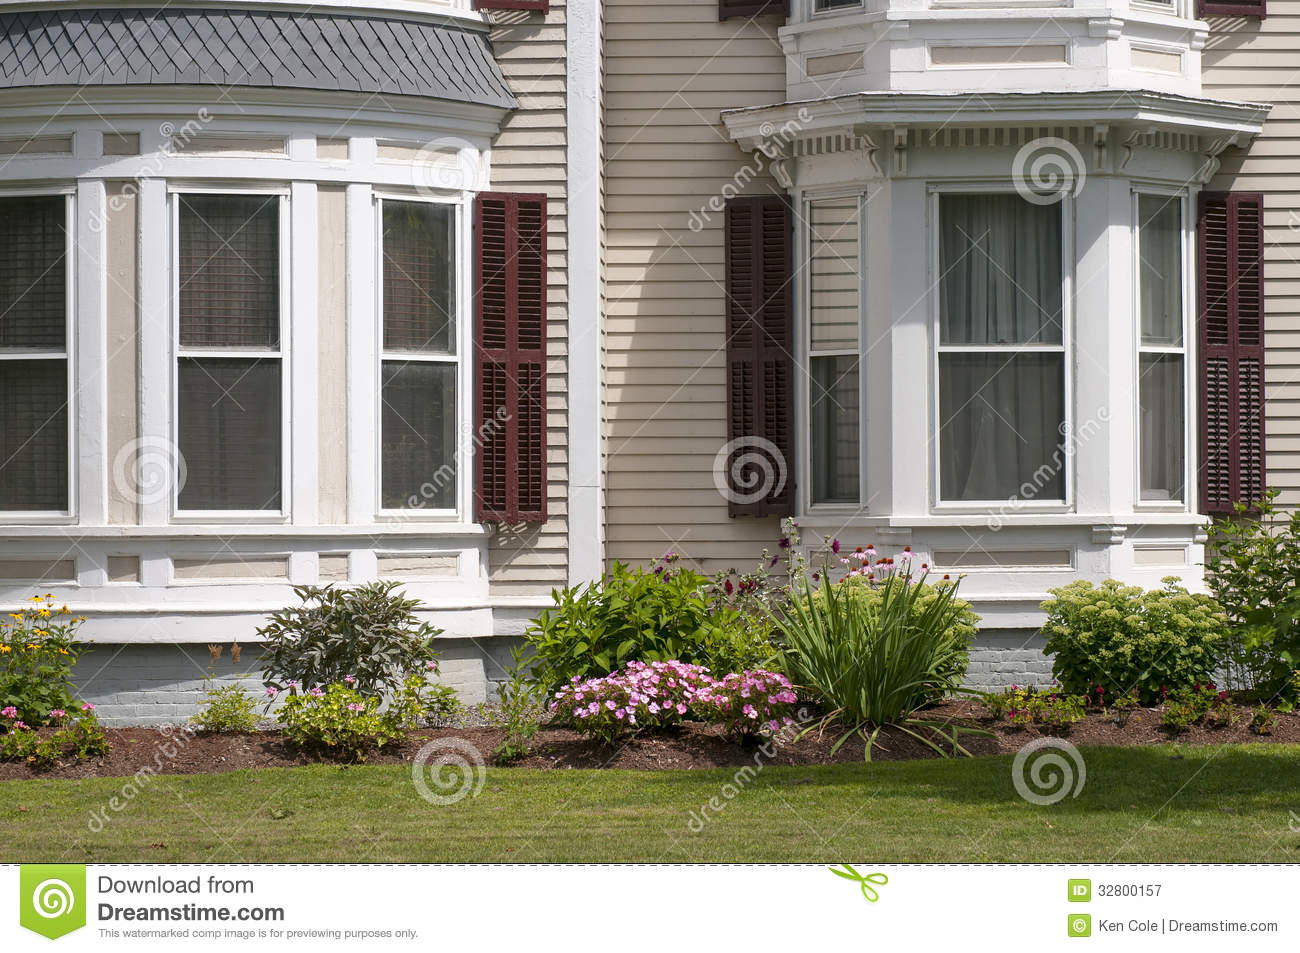 New england house windows stock image image of annuals for Windows for my house